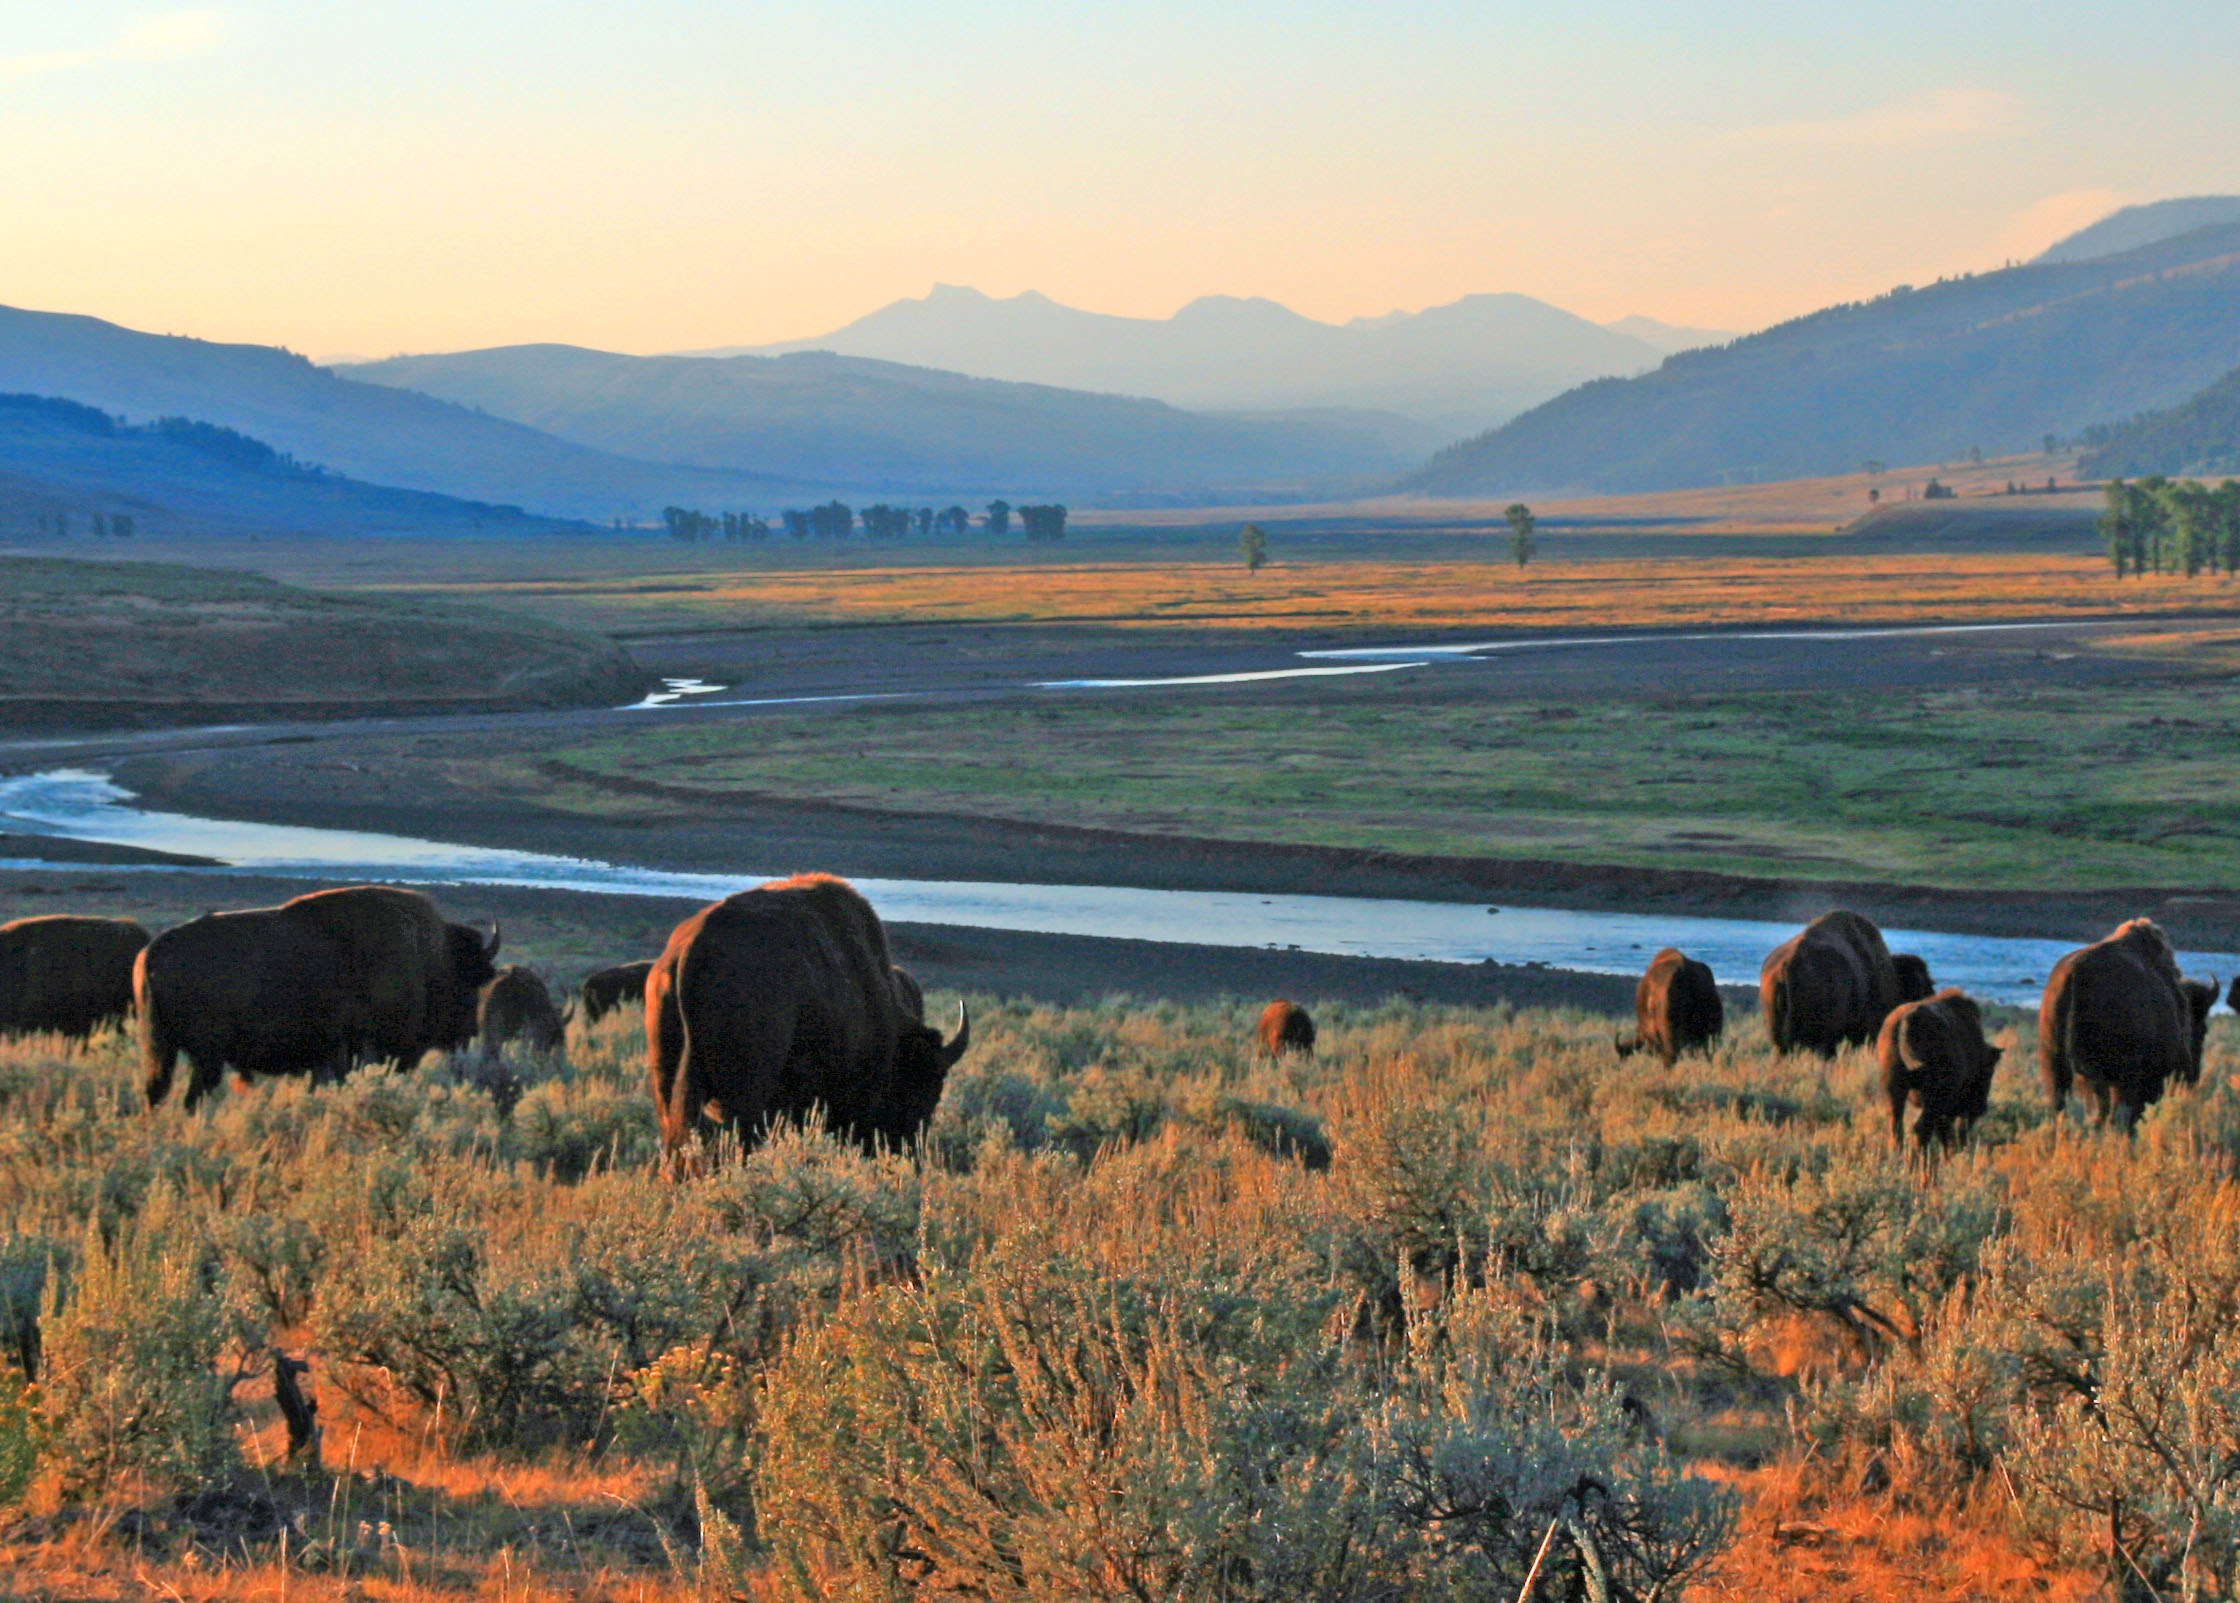 Bison Buffalo herd in early morning light in the Lamar Valley of Yellowstone National Park in Wyoiming USA